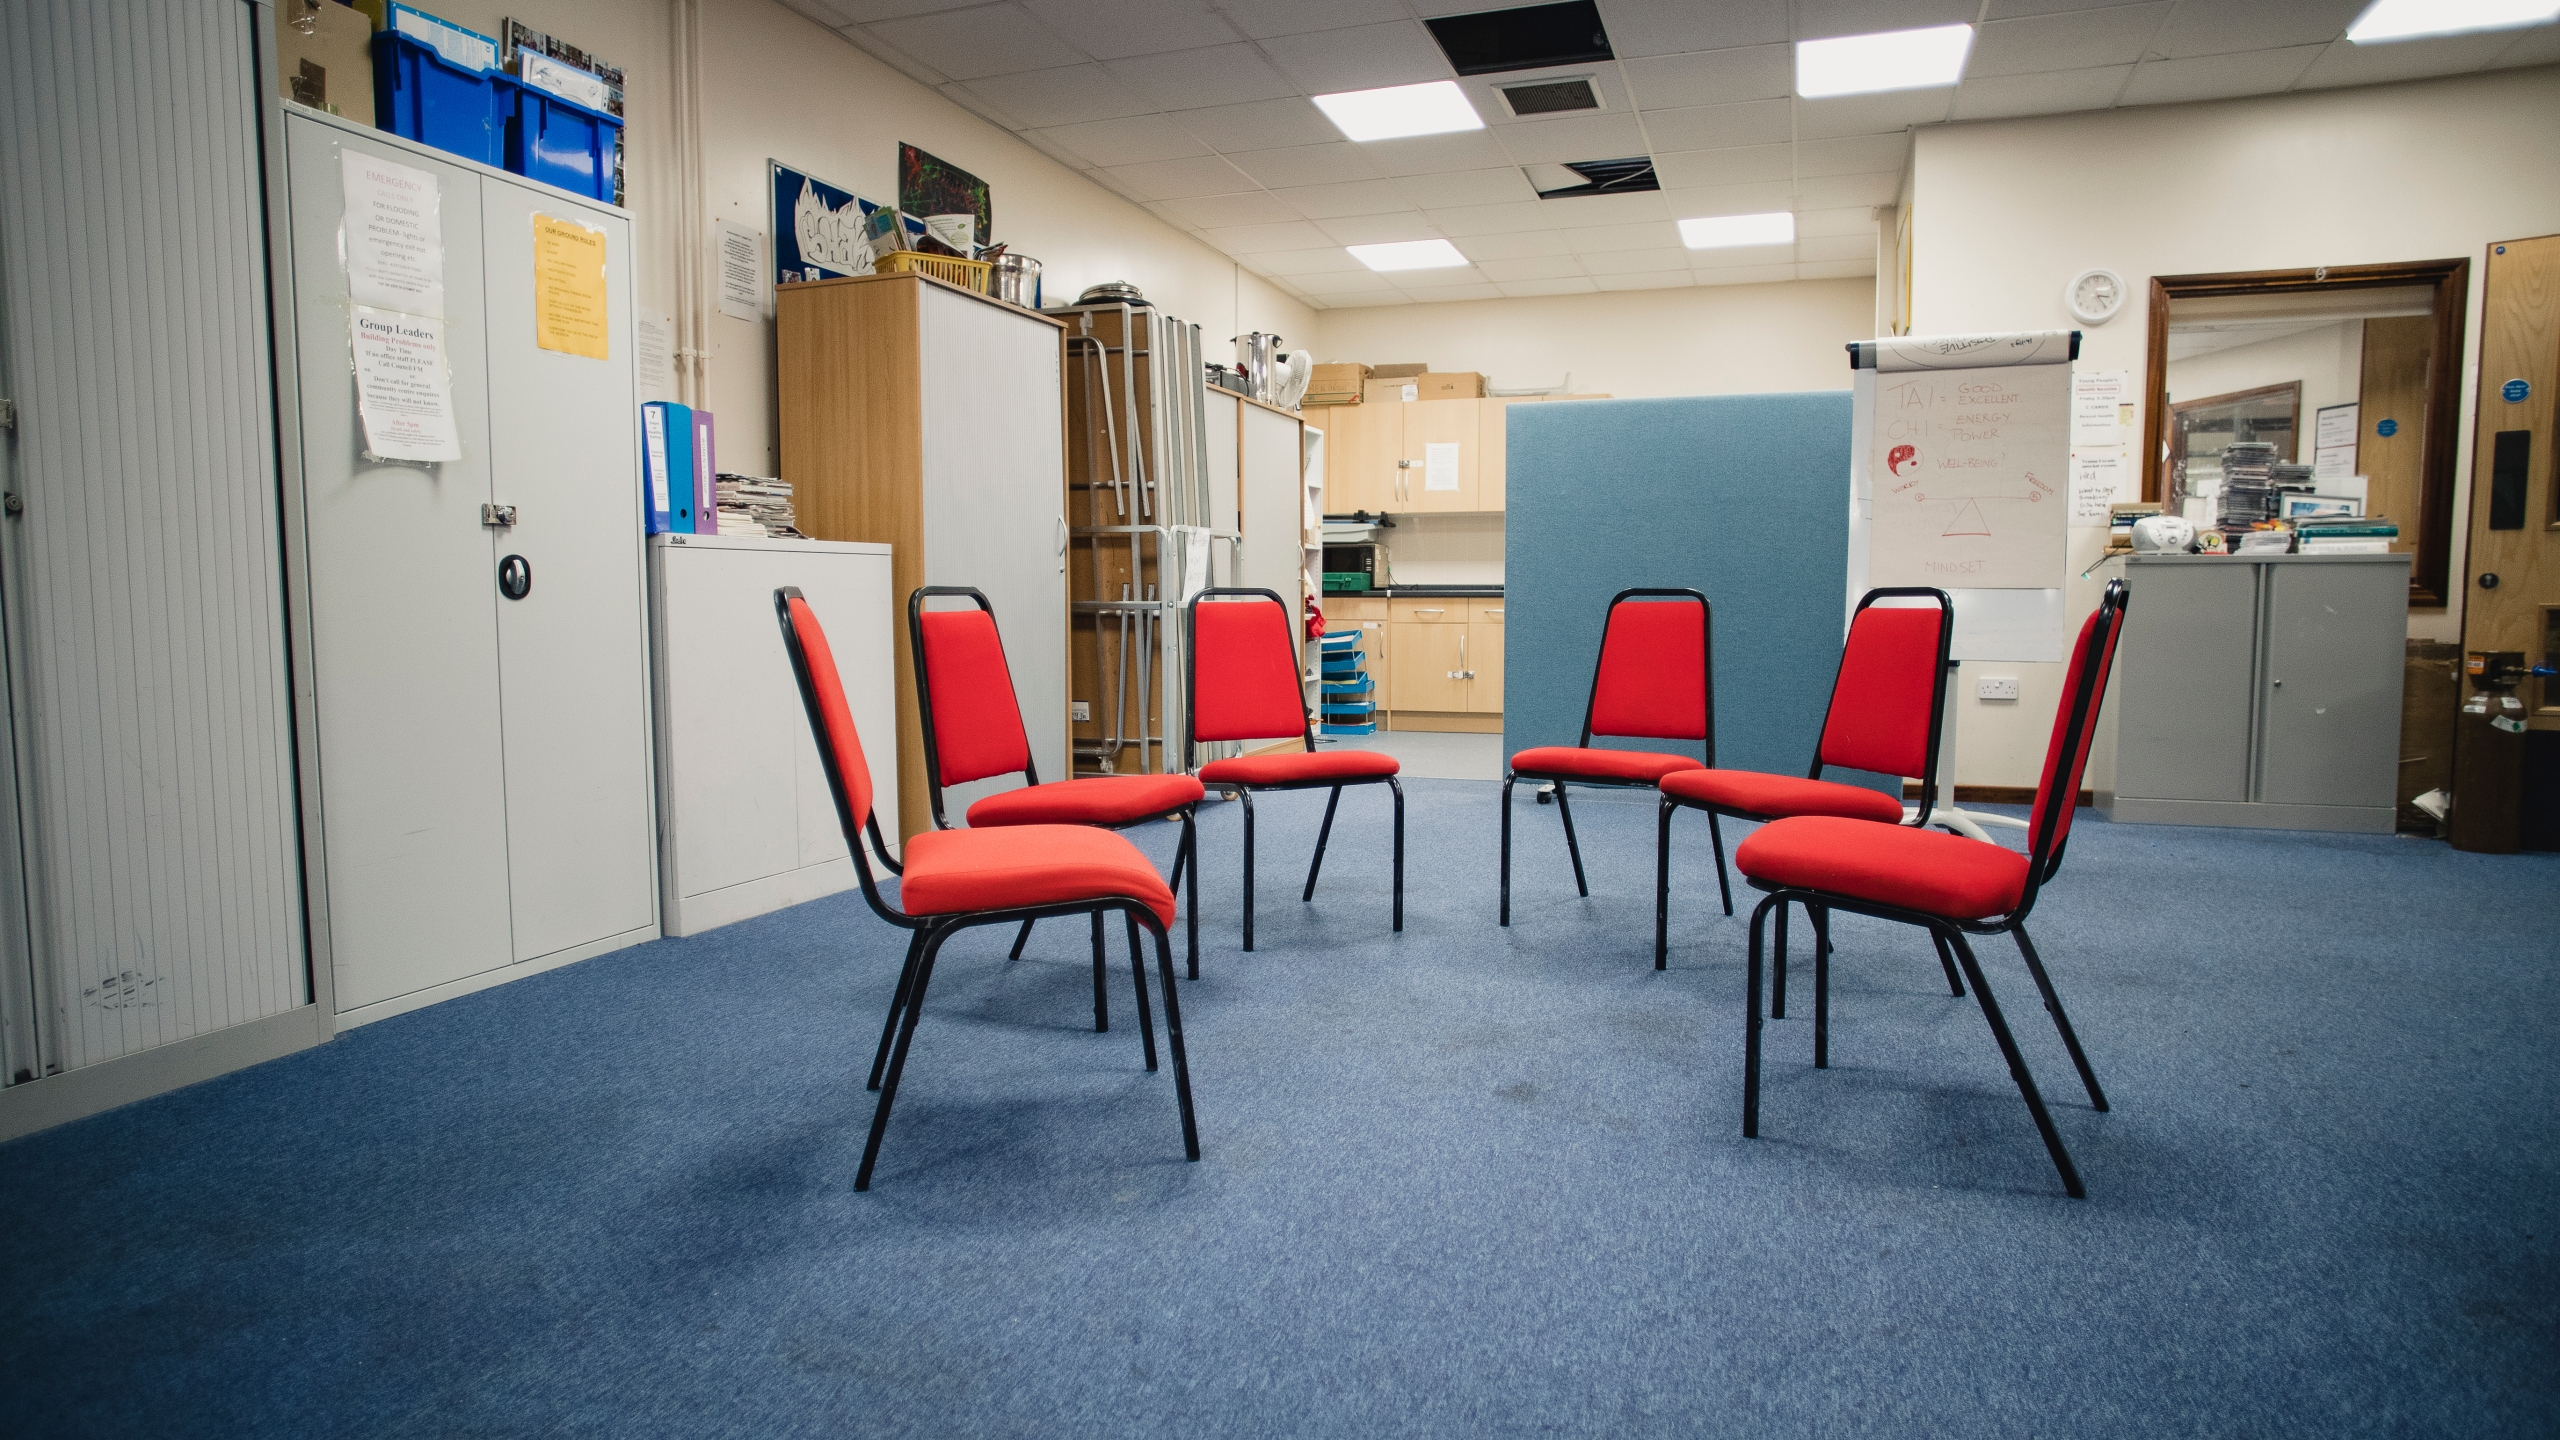 A rehabilitation center room prepared for a group therapy session is shown in a file image. (SolStock via Getty Images)